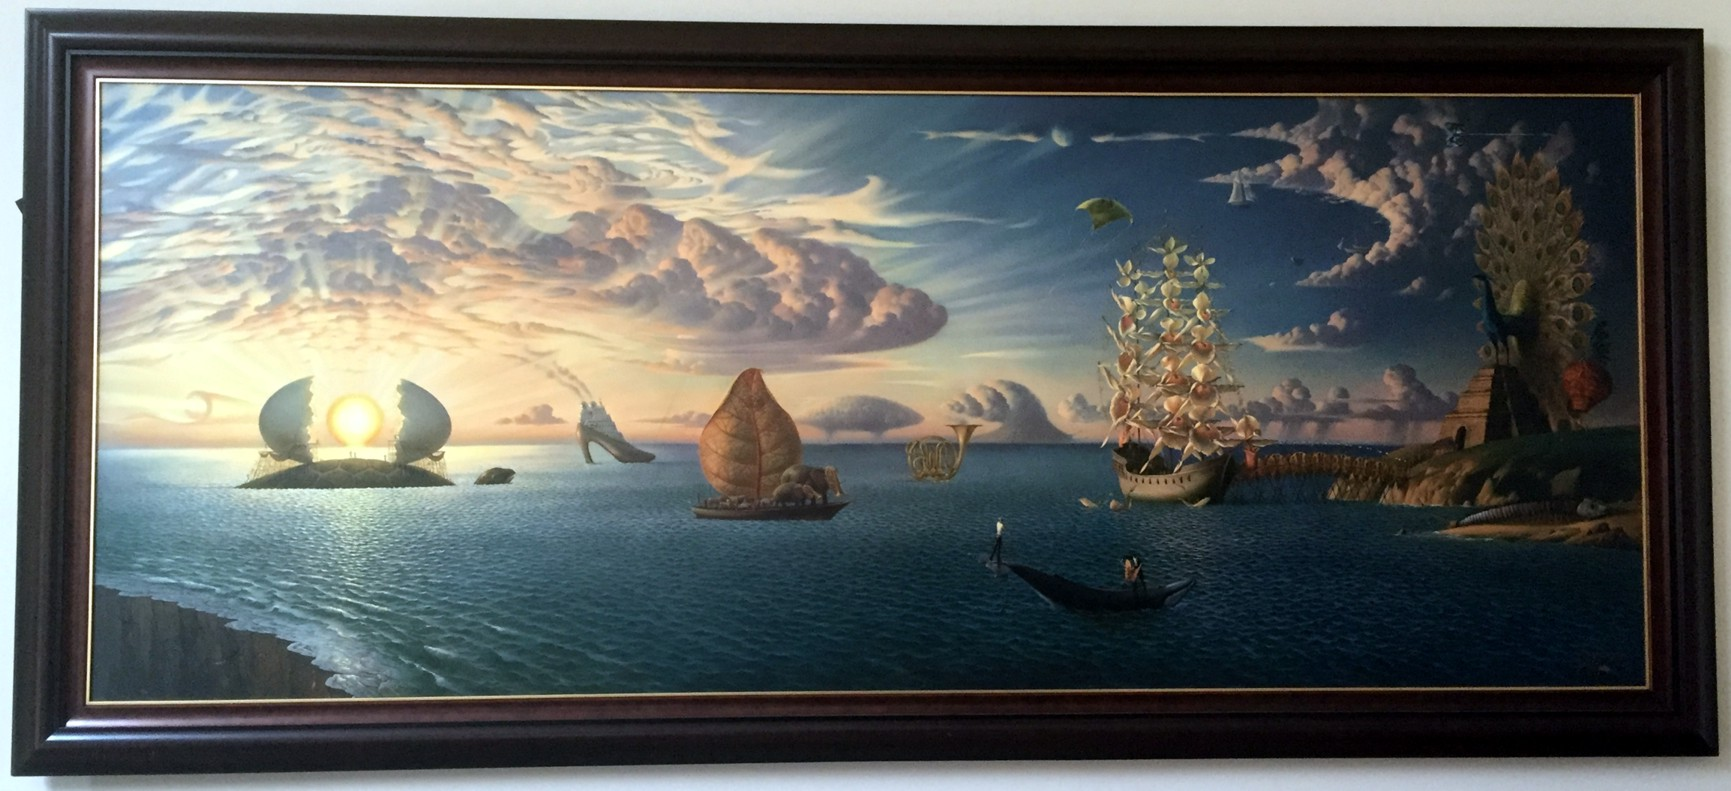 MYTHOLOGY OF THE OCEANS and HEAVENS by Vladimir Kush